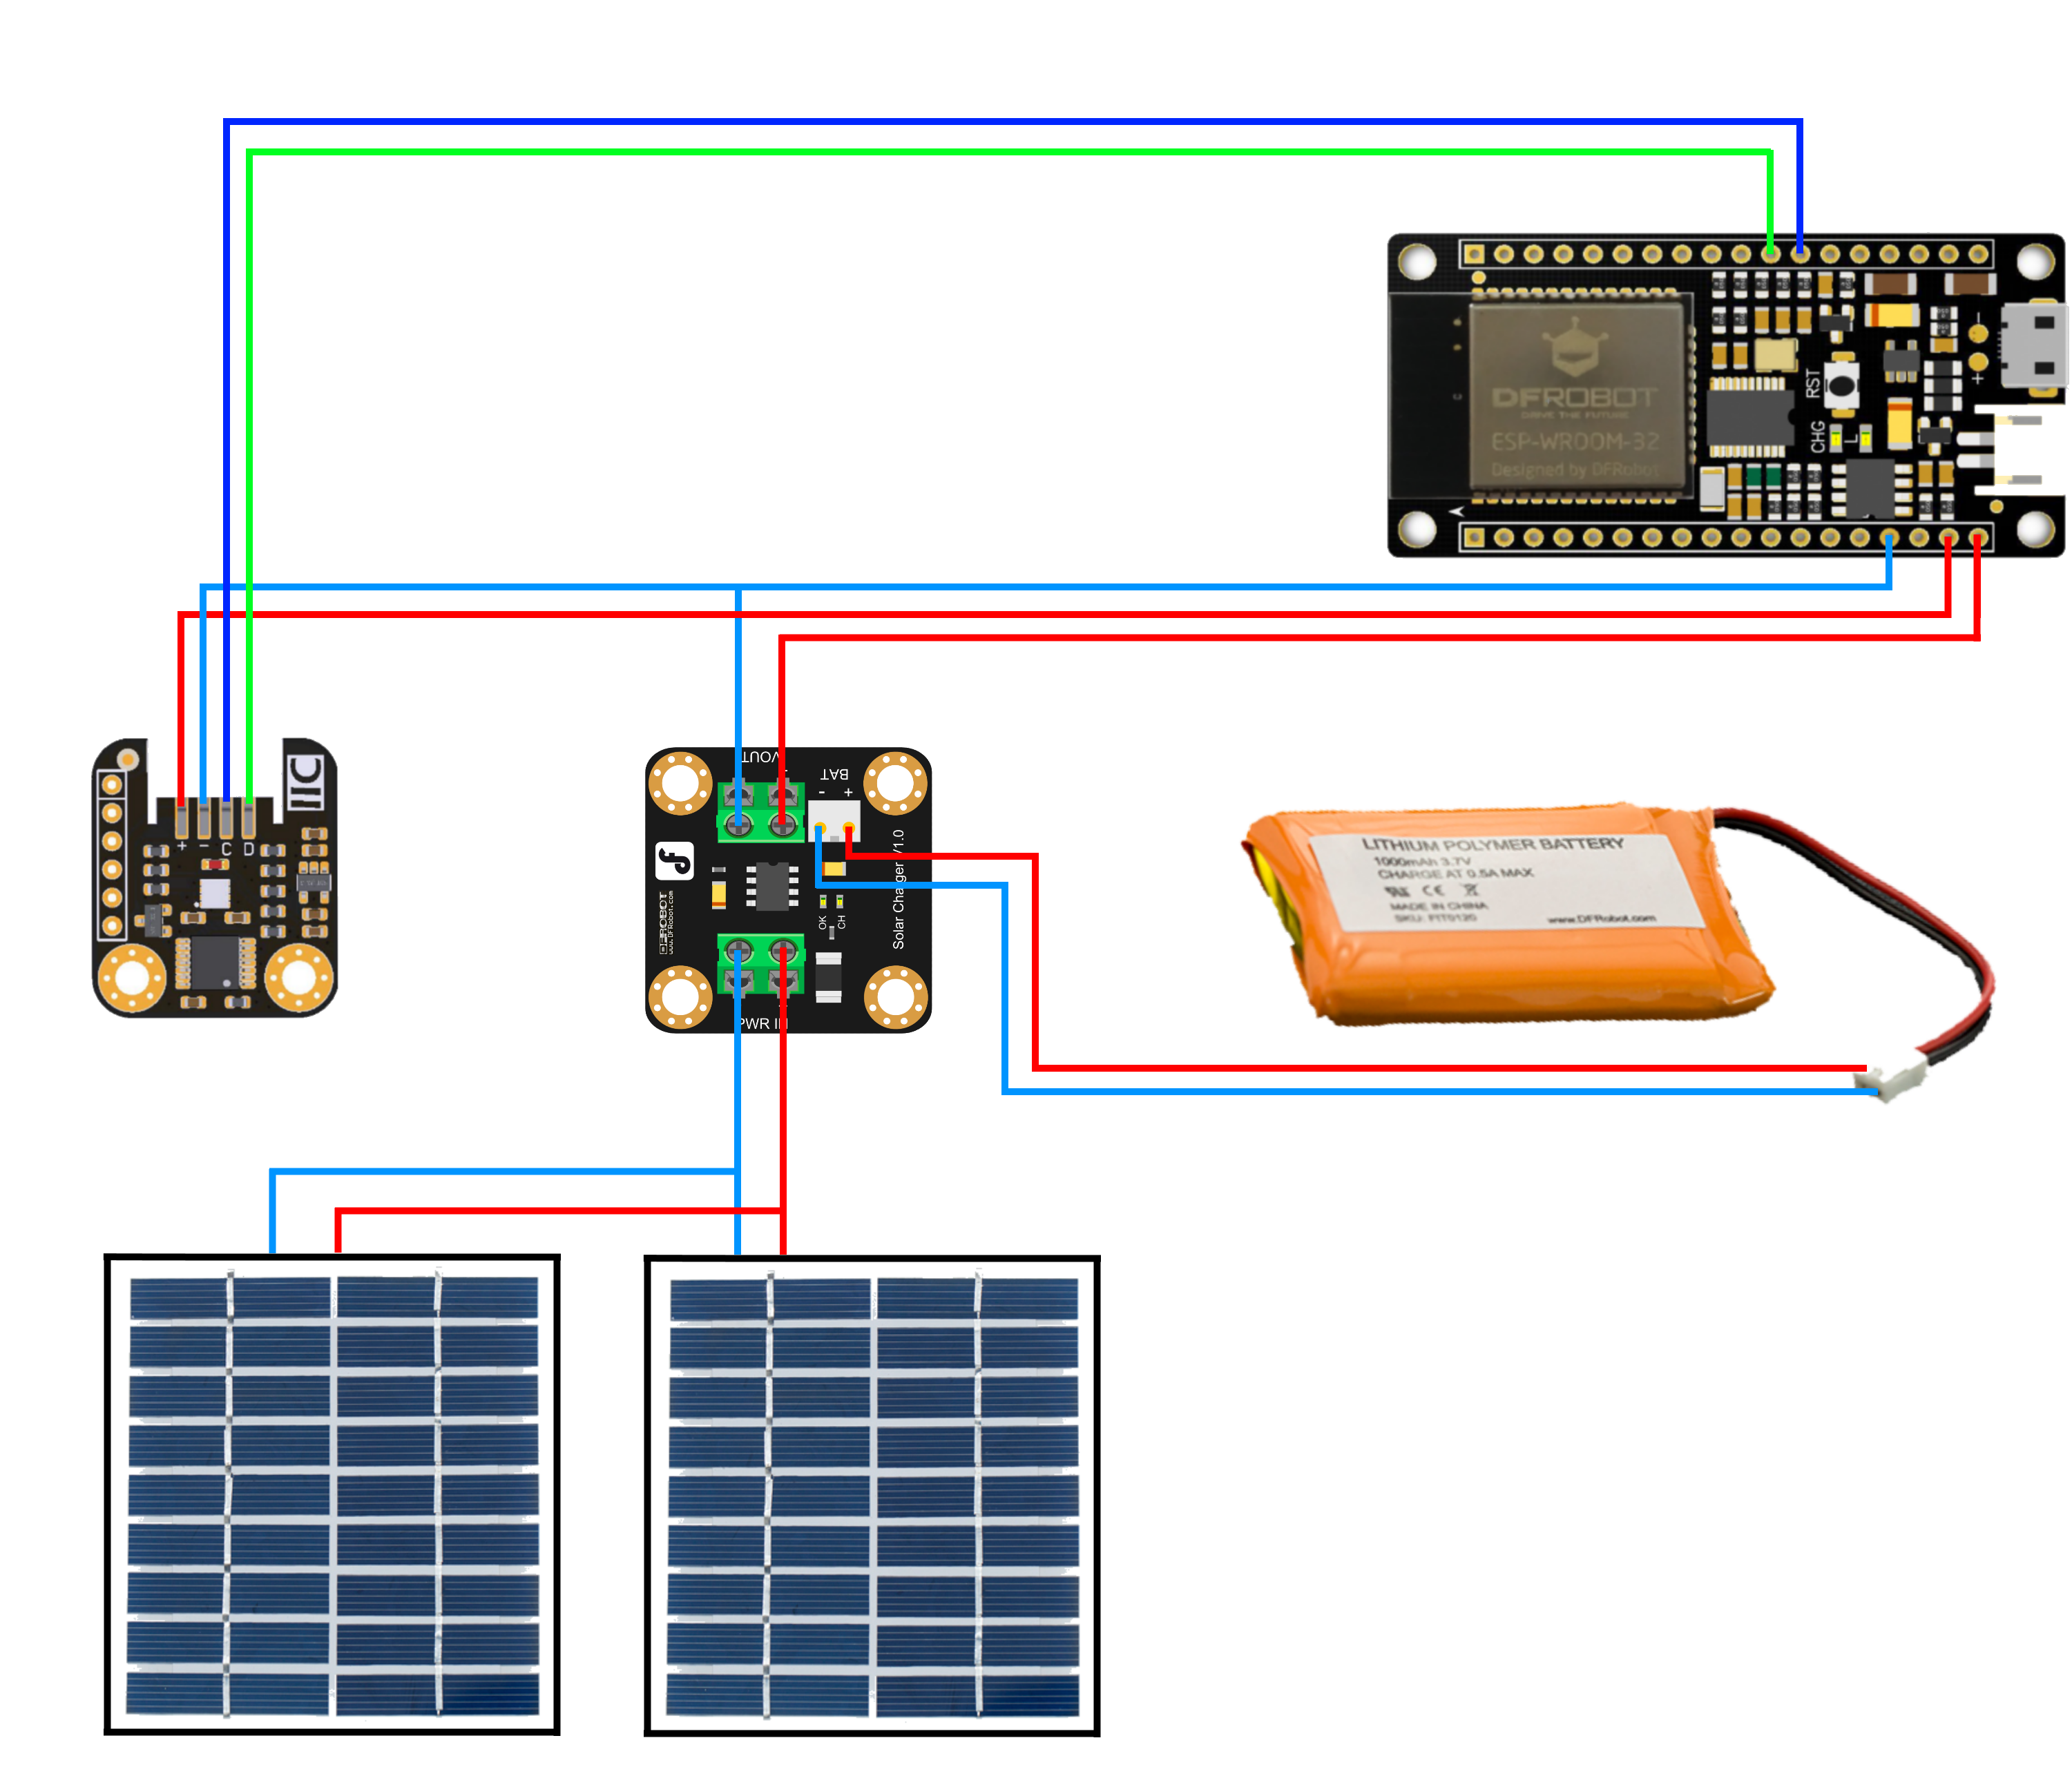 Esp32 Solar Weather Station Wiring Panels In Parallel Diagram Sch 1 Go2se2oopv